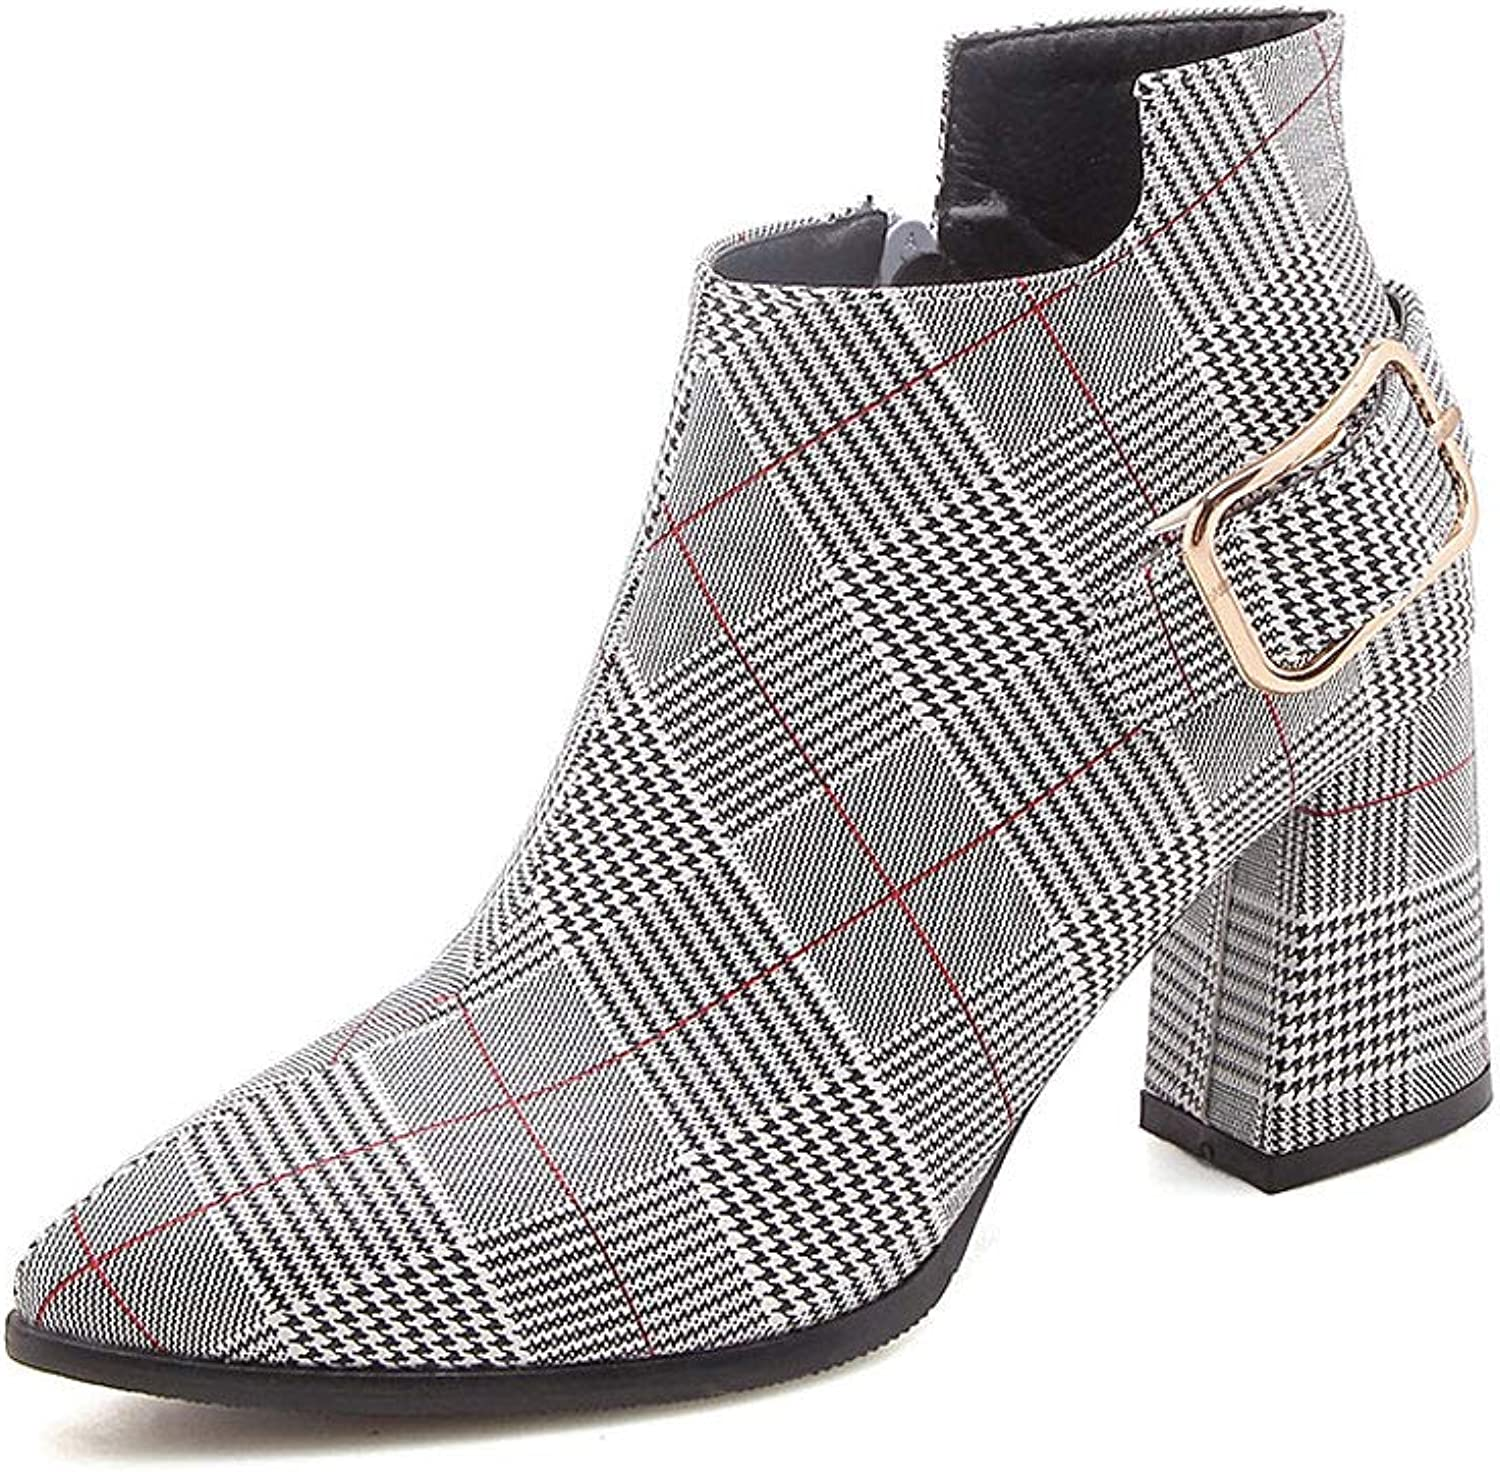 Plaid High Heel Ankle Boots, Pointed Large Size Thick with Low Boots Side Zipper Martin Boots Belt Buckle Non-Slip Waterproof Platform Short Boots Women's shoes